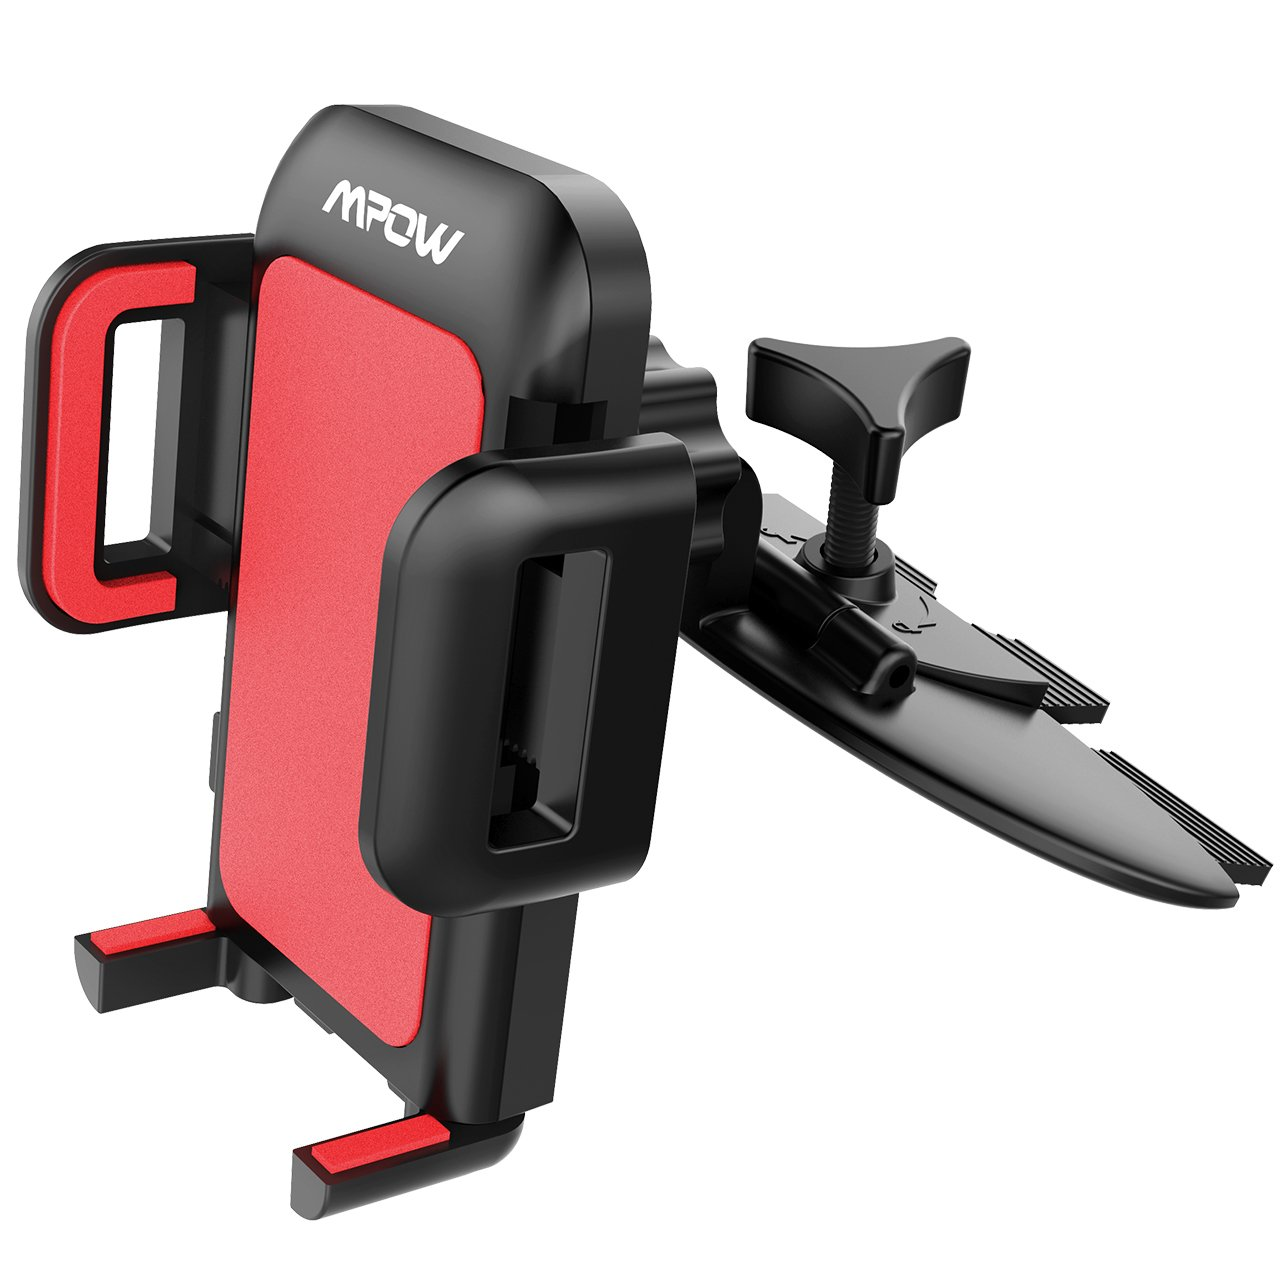 Mpow Car Phone Mount,CD Slot Car Phone Holder Universal Car Cradle Mount with Three-Side Grips and One-Touch Design for iPhone